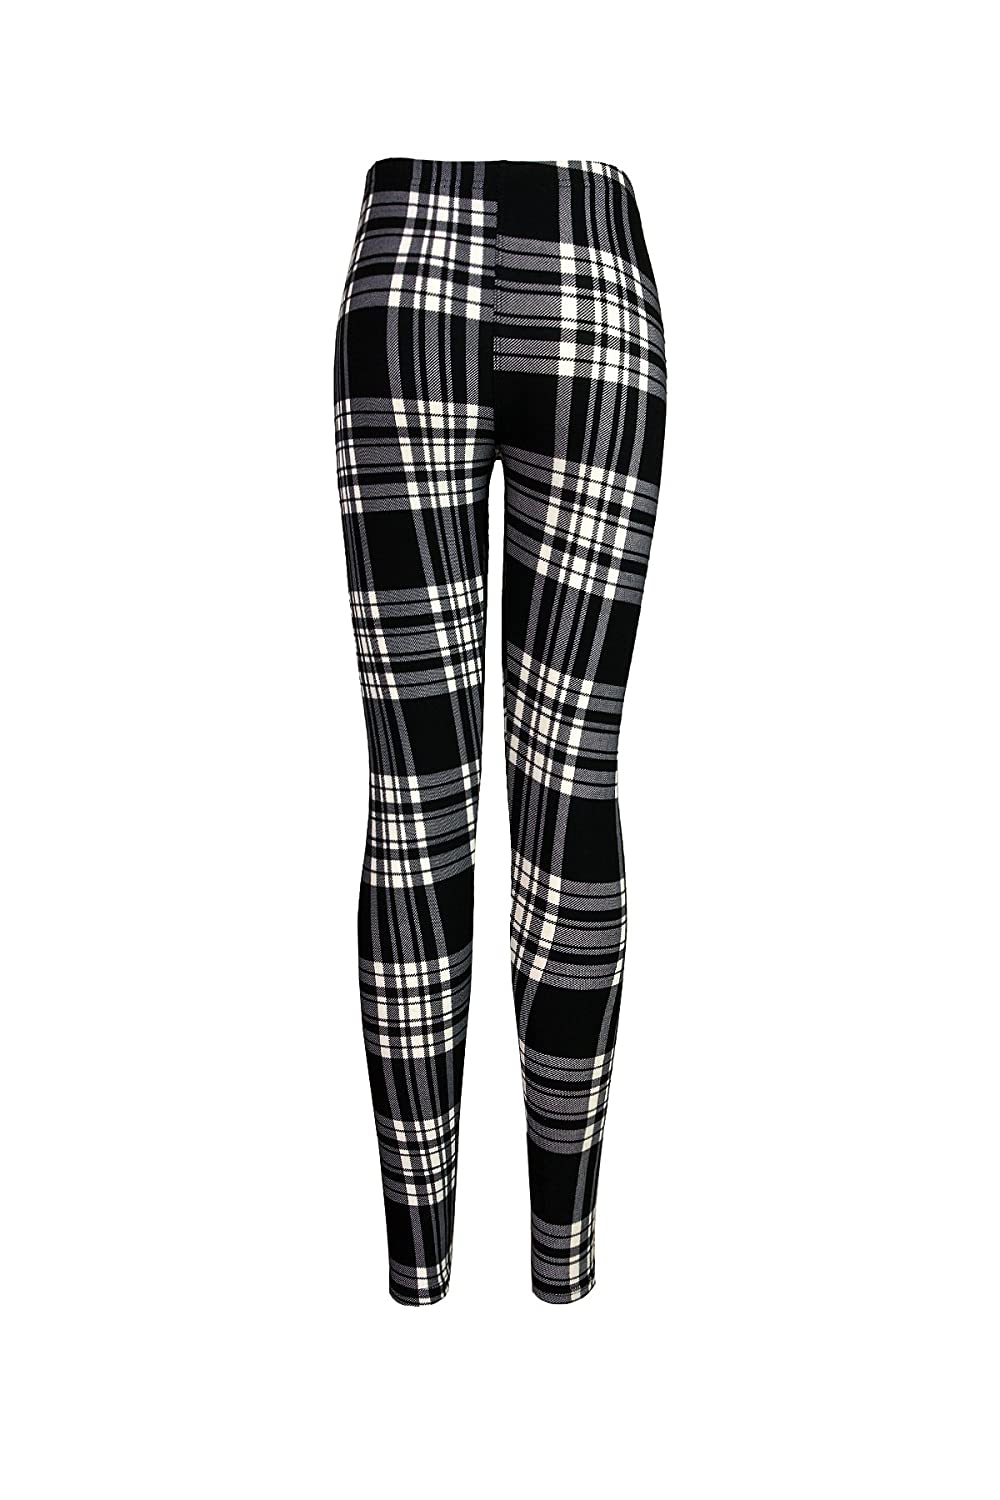 5866526aa88912 Monochrome Grayscale Plaid Women's Leggings Tights (One Size (S/M),  Monochrome Black White and Gray) at Amazon Women's Clothing store: